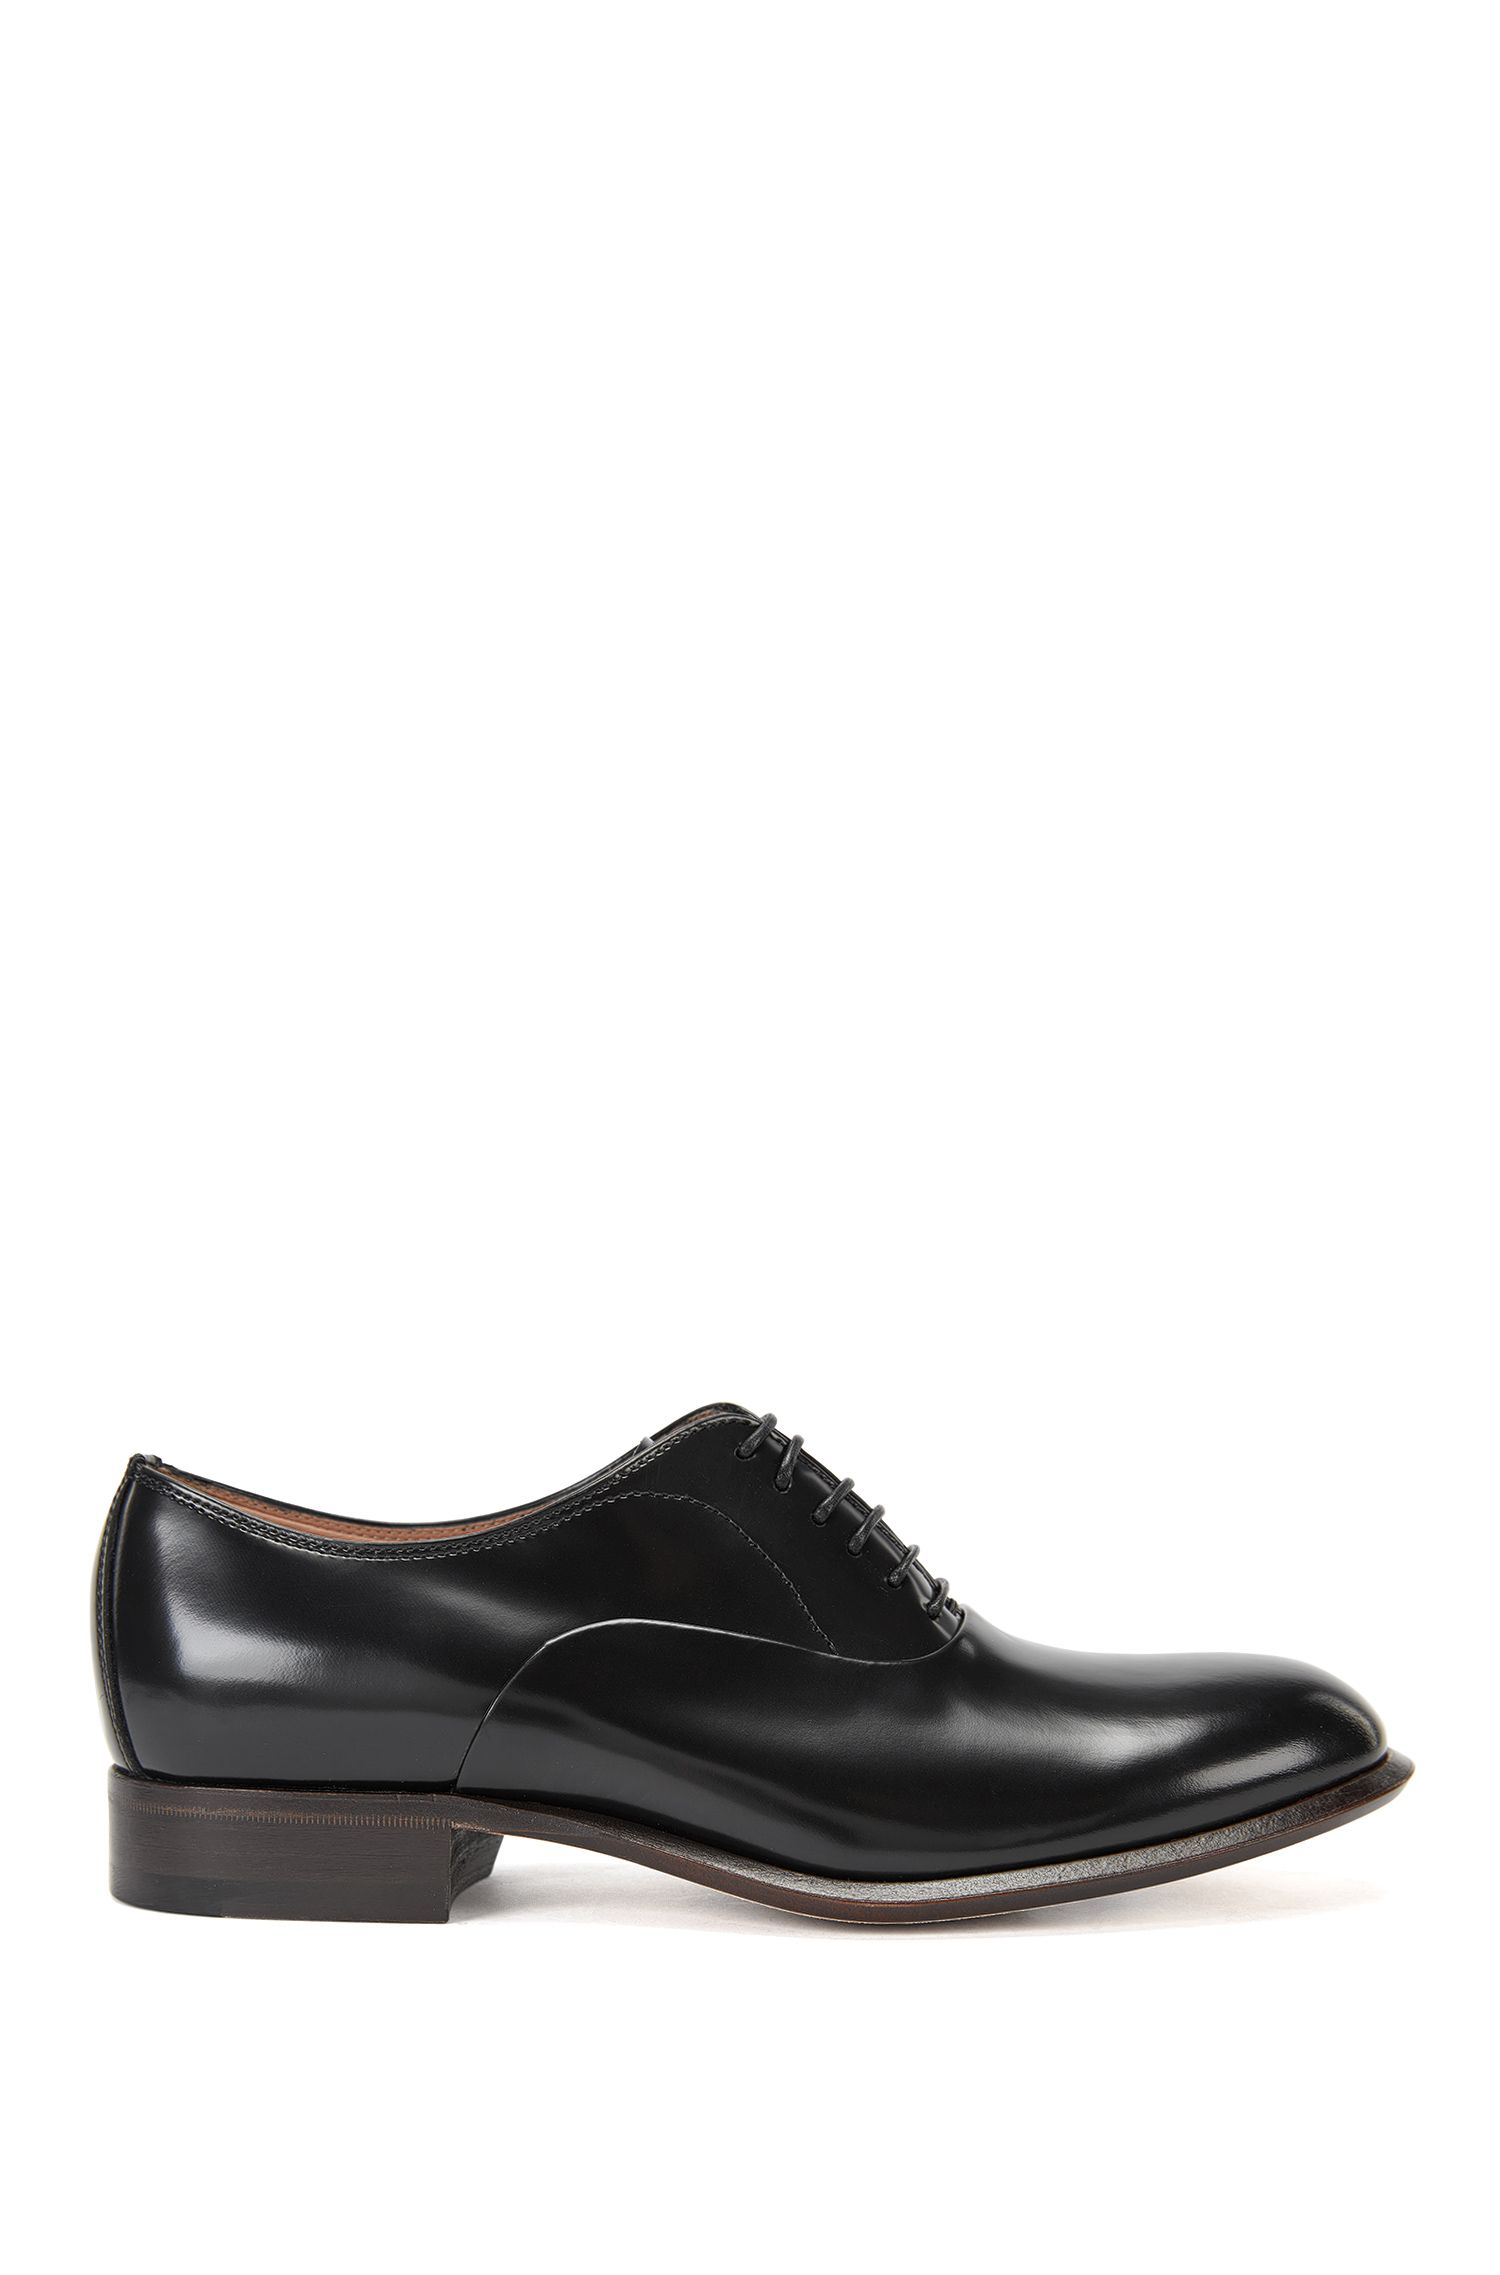 Lace-up shoes in Italian leather